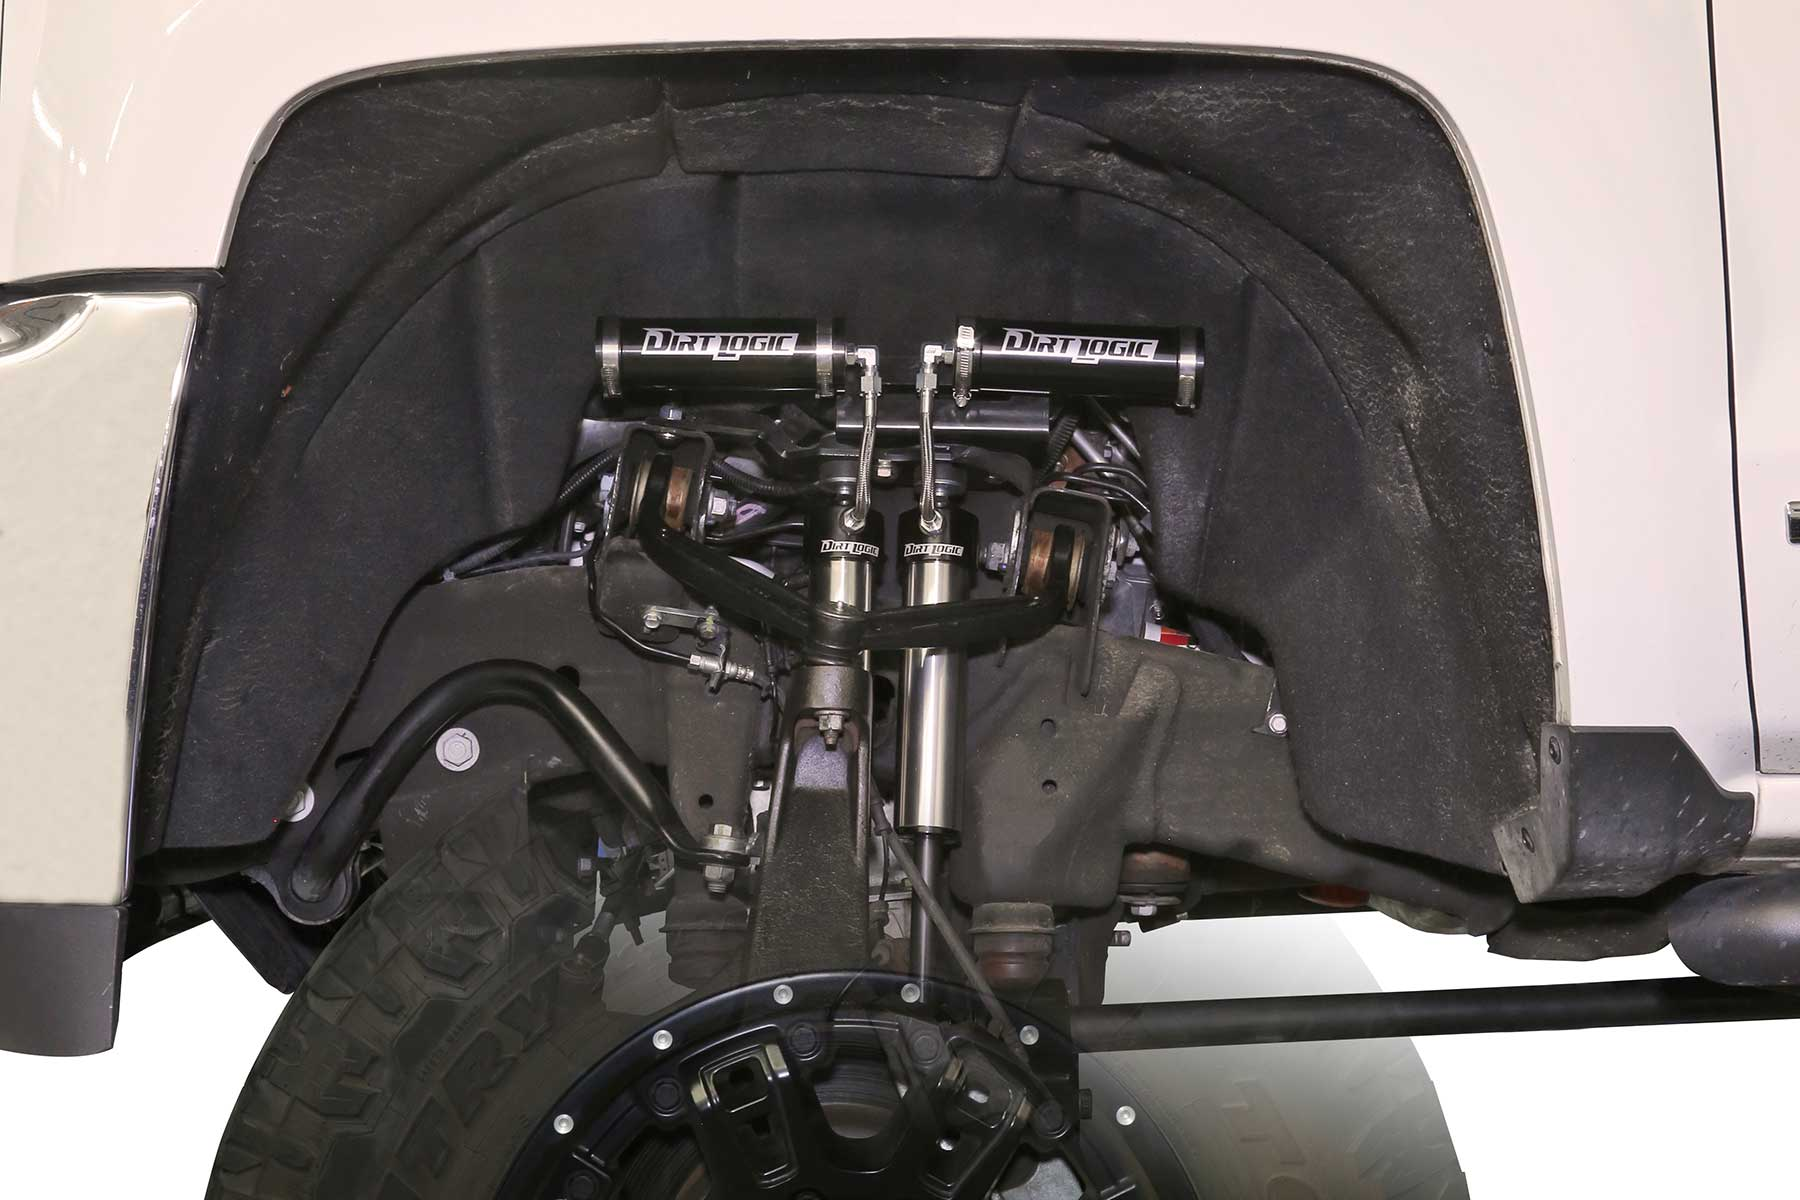 6 Front Dual Shock System W Dirt Logic 2 25 Resi Shocks Fts21244